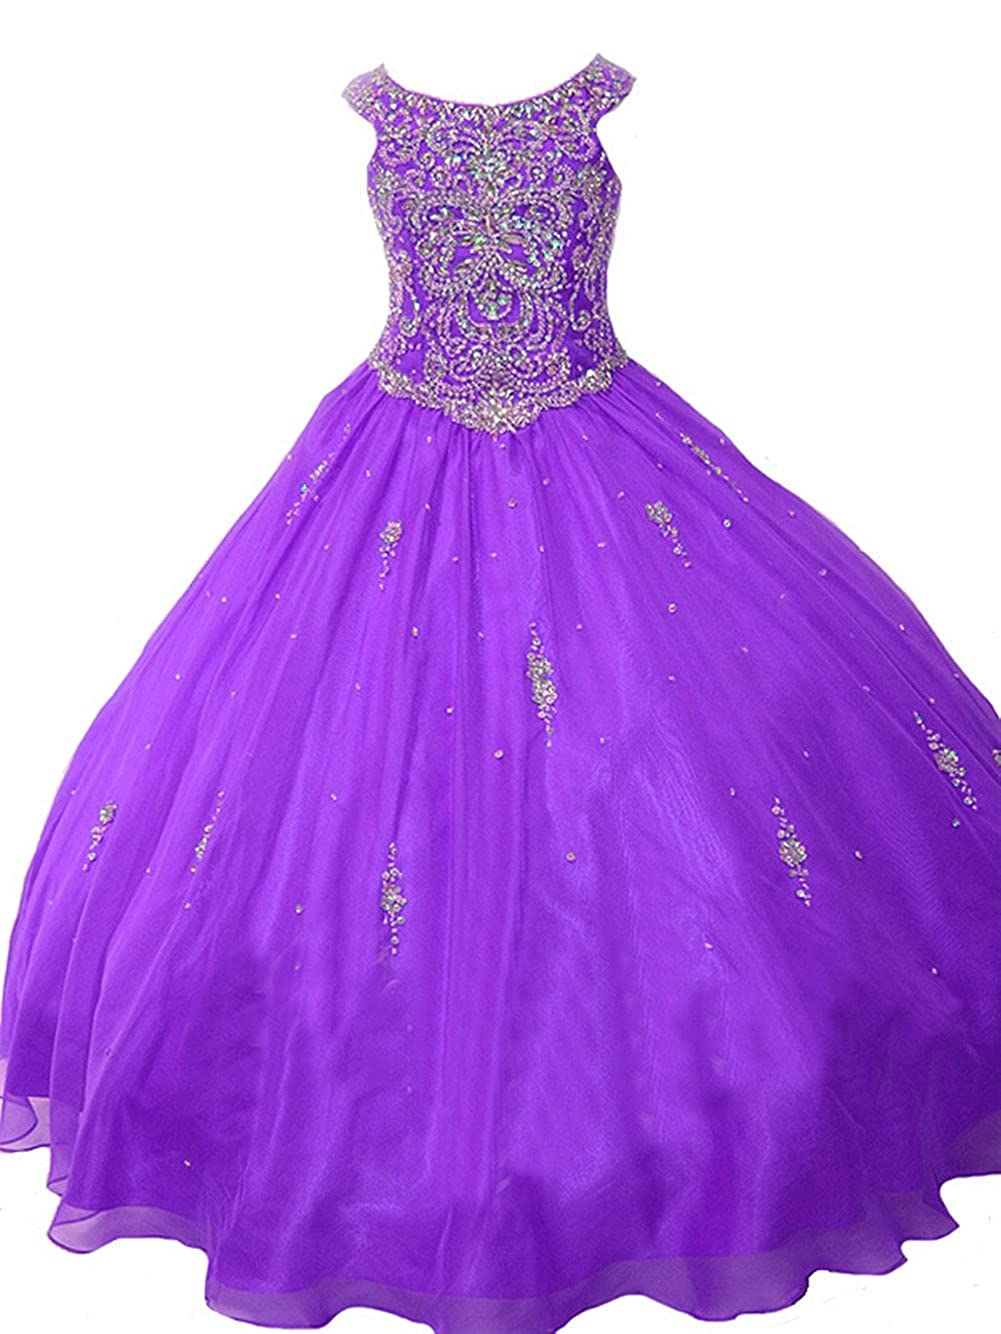 49b63e4d8d5 Amazon.com  TaYan Girls Birthday Party Ball Gown Crystals Beading Girls  Pageant Dresses  Clothing